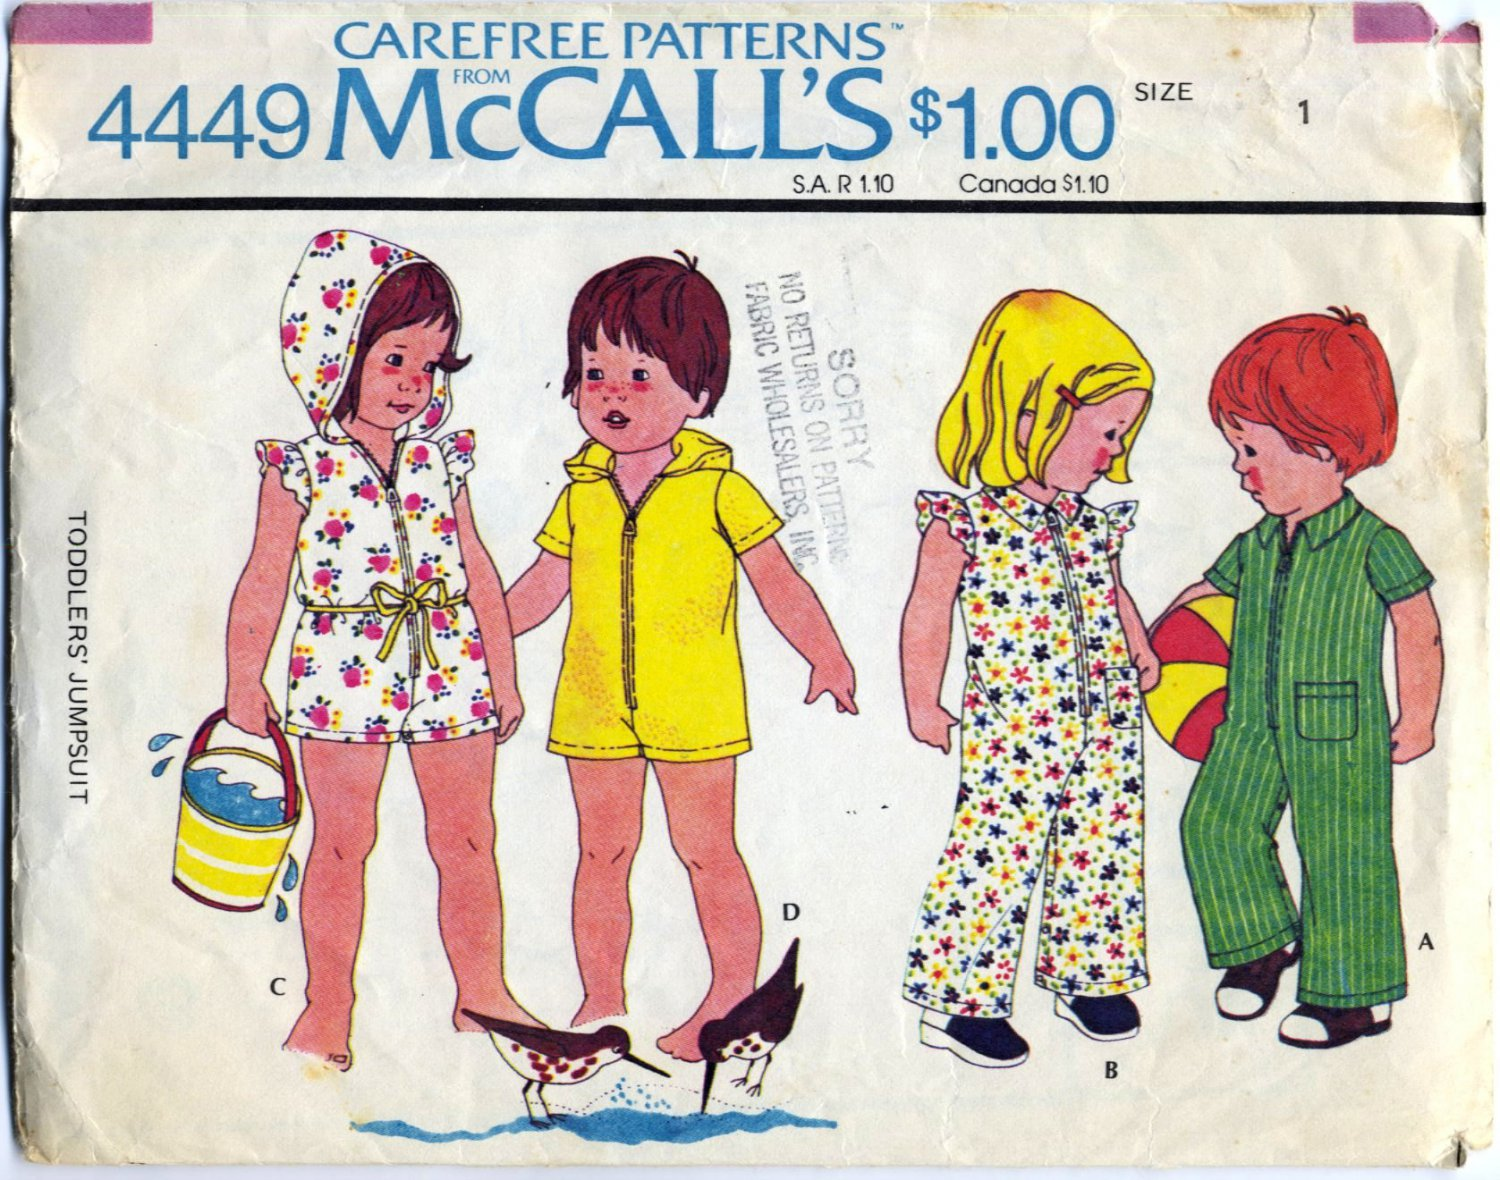 McCall's 4449 Toddler's Jumpsuit - - 1970s CUT Sewing Pattern - Toddler Size 1 Breast 20""